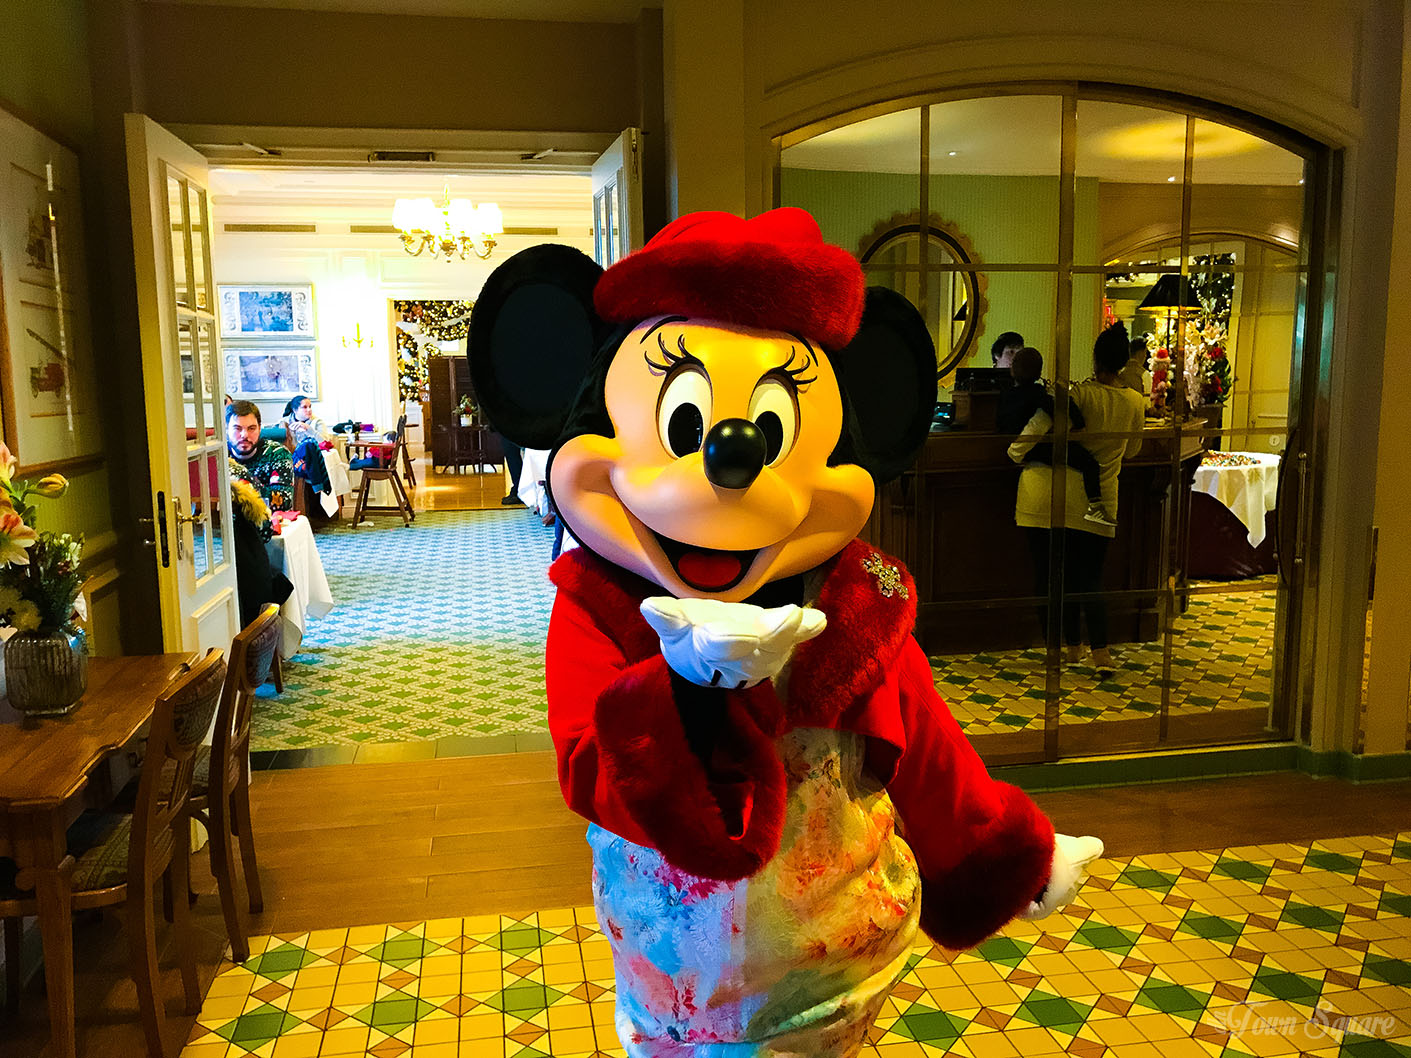 Minnie at the Disneyland Paris Sunday Brunch